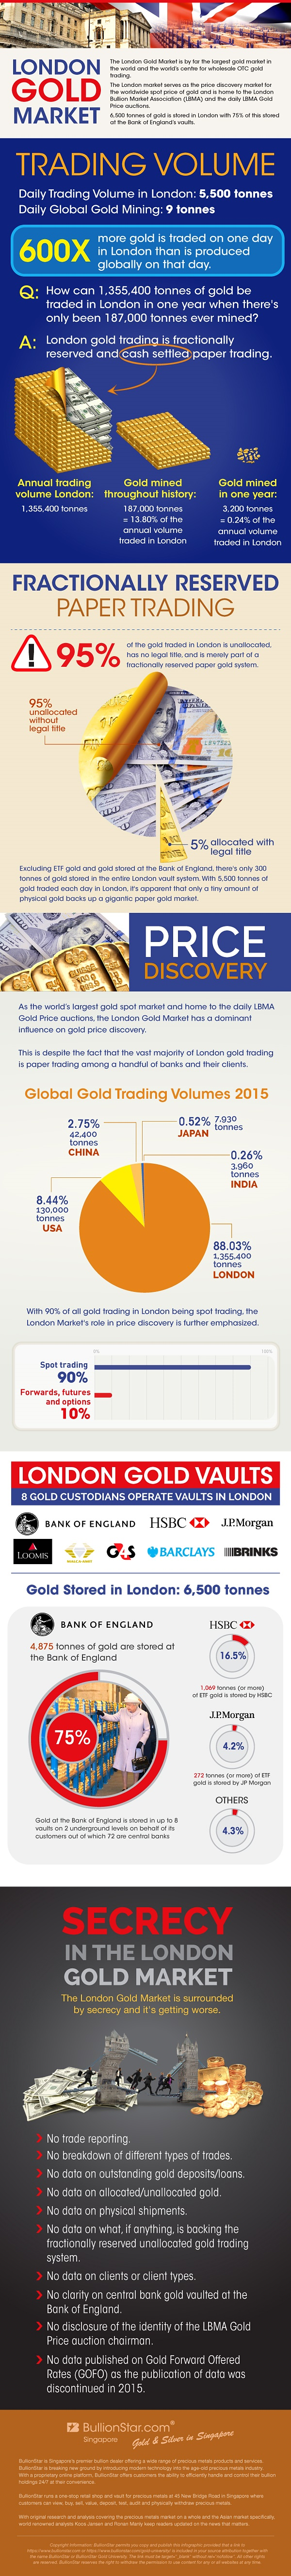 Infographic London Gold Market